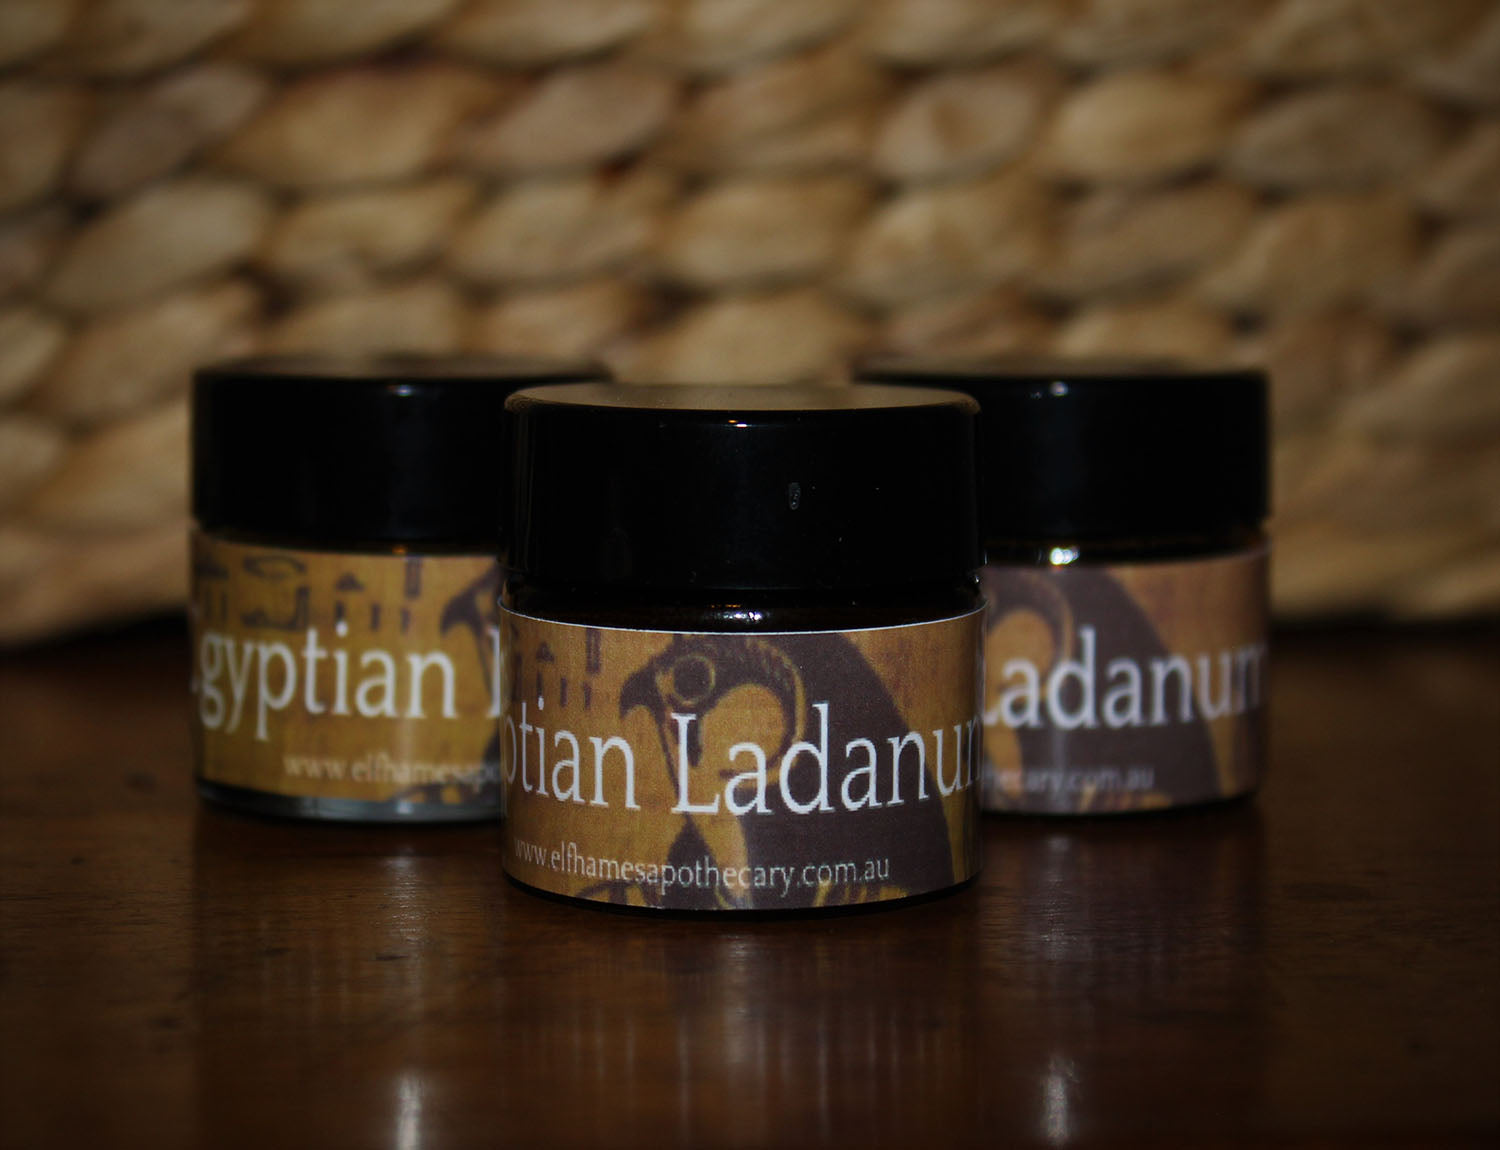 Egyptian Ladanum (Liquid Resin)